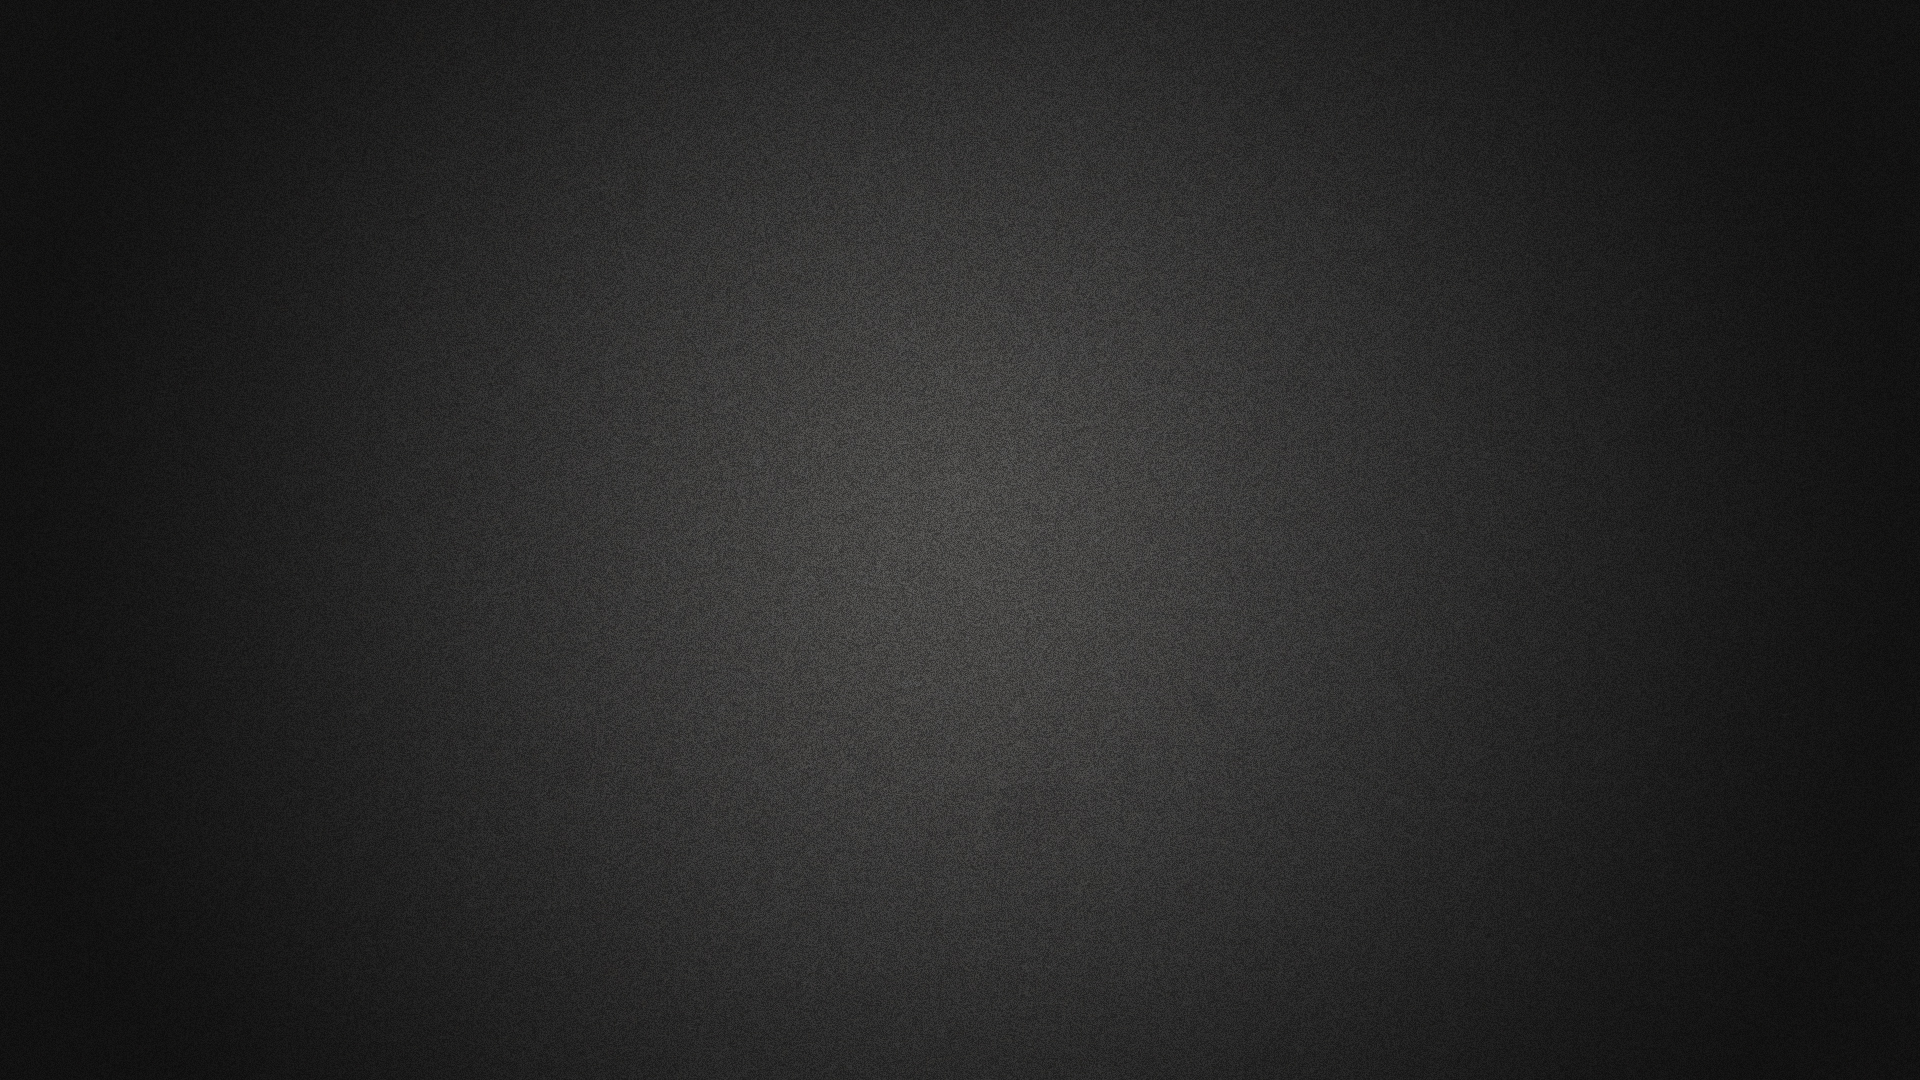 Free Matte Black Wallpaper